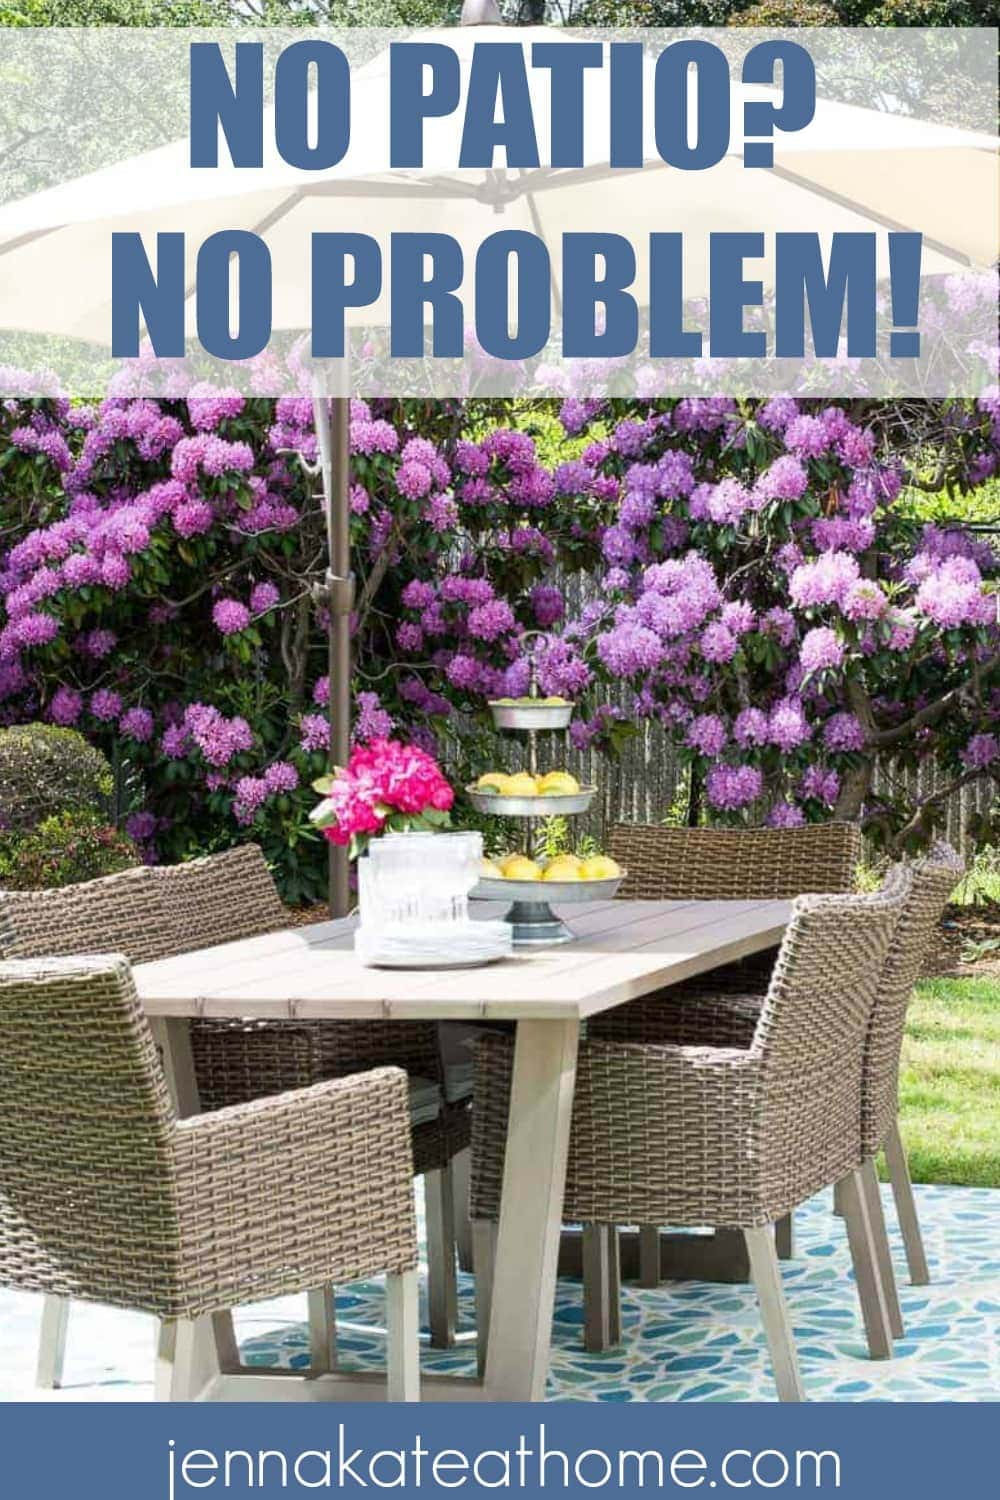 No patio? Decorate and style your backyard with these simple ideas that don't require a patio or deck!